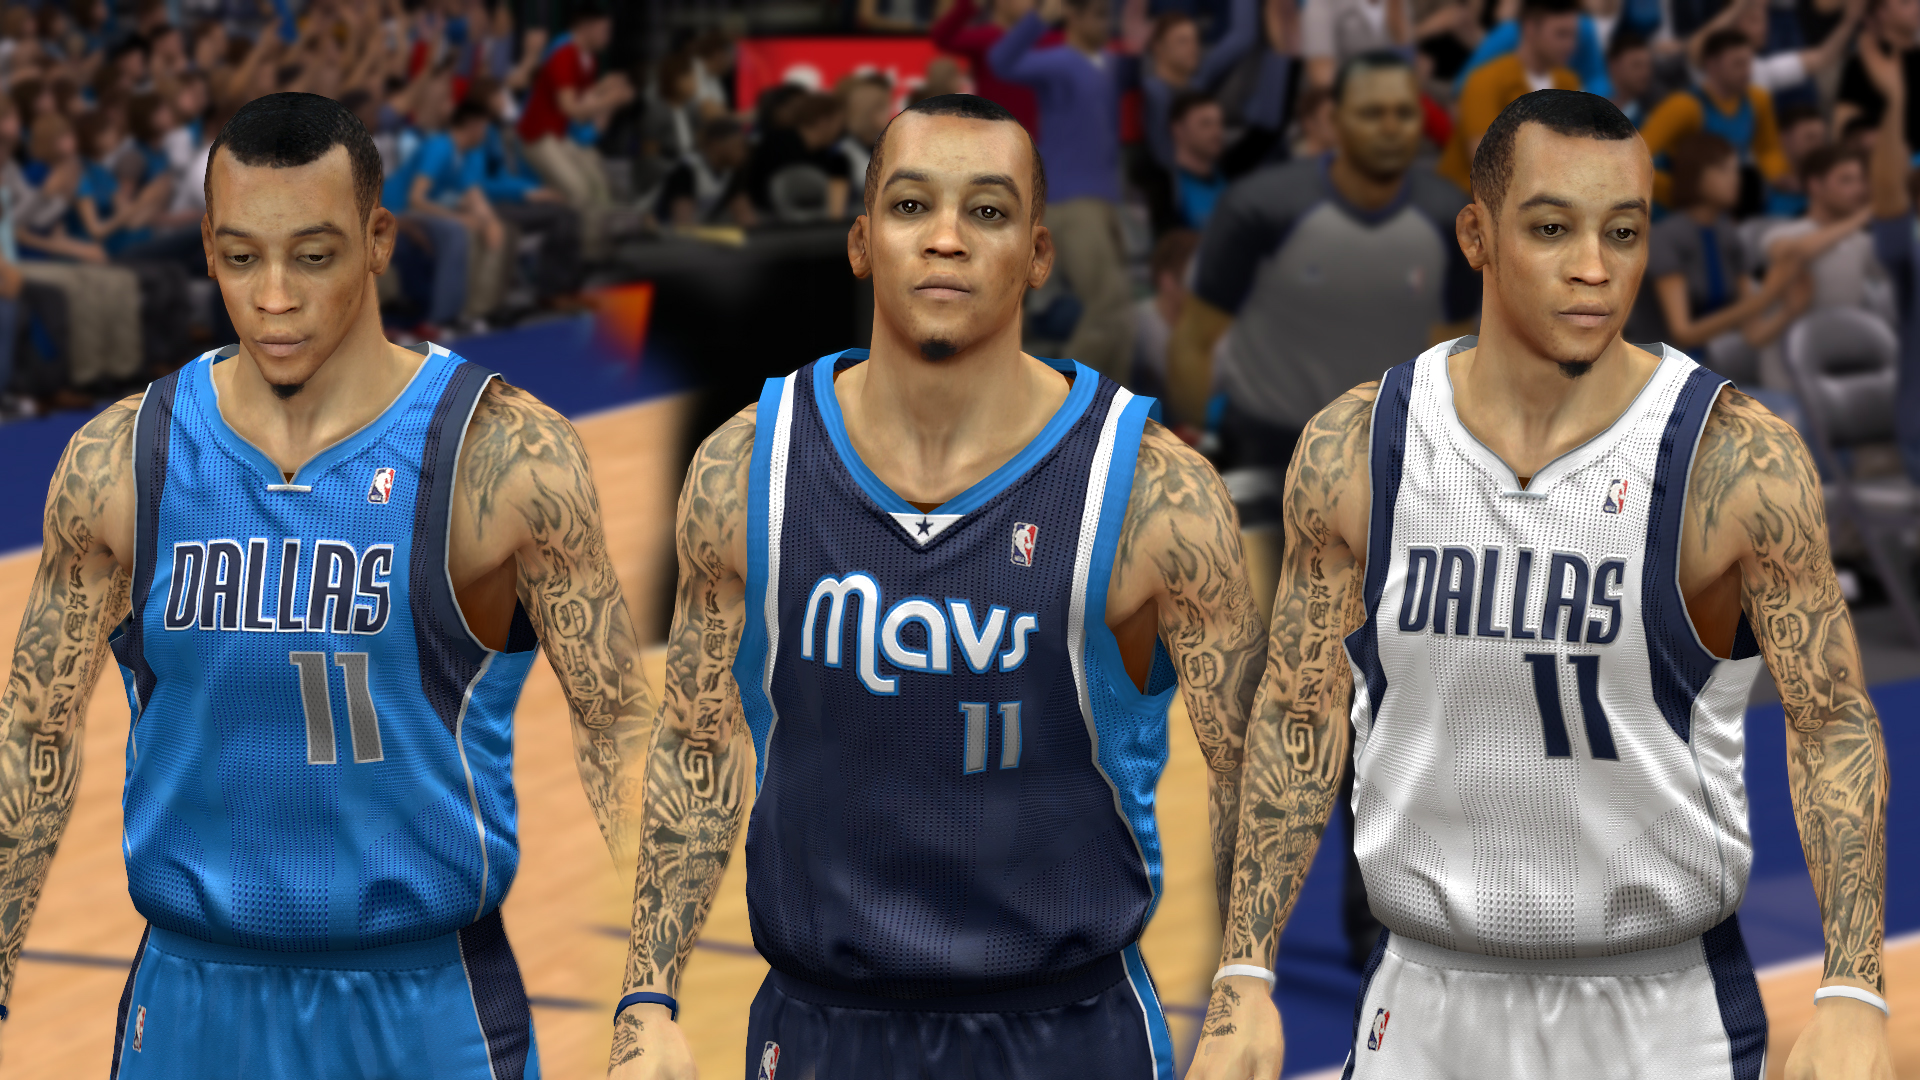 Dallas Mavericks Jersey Update